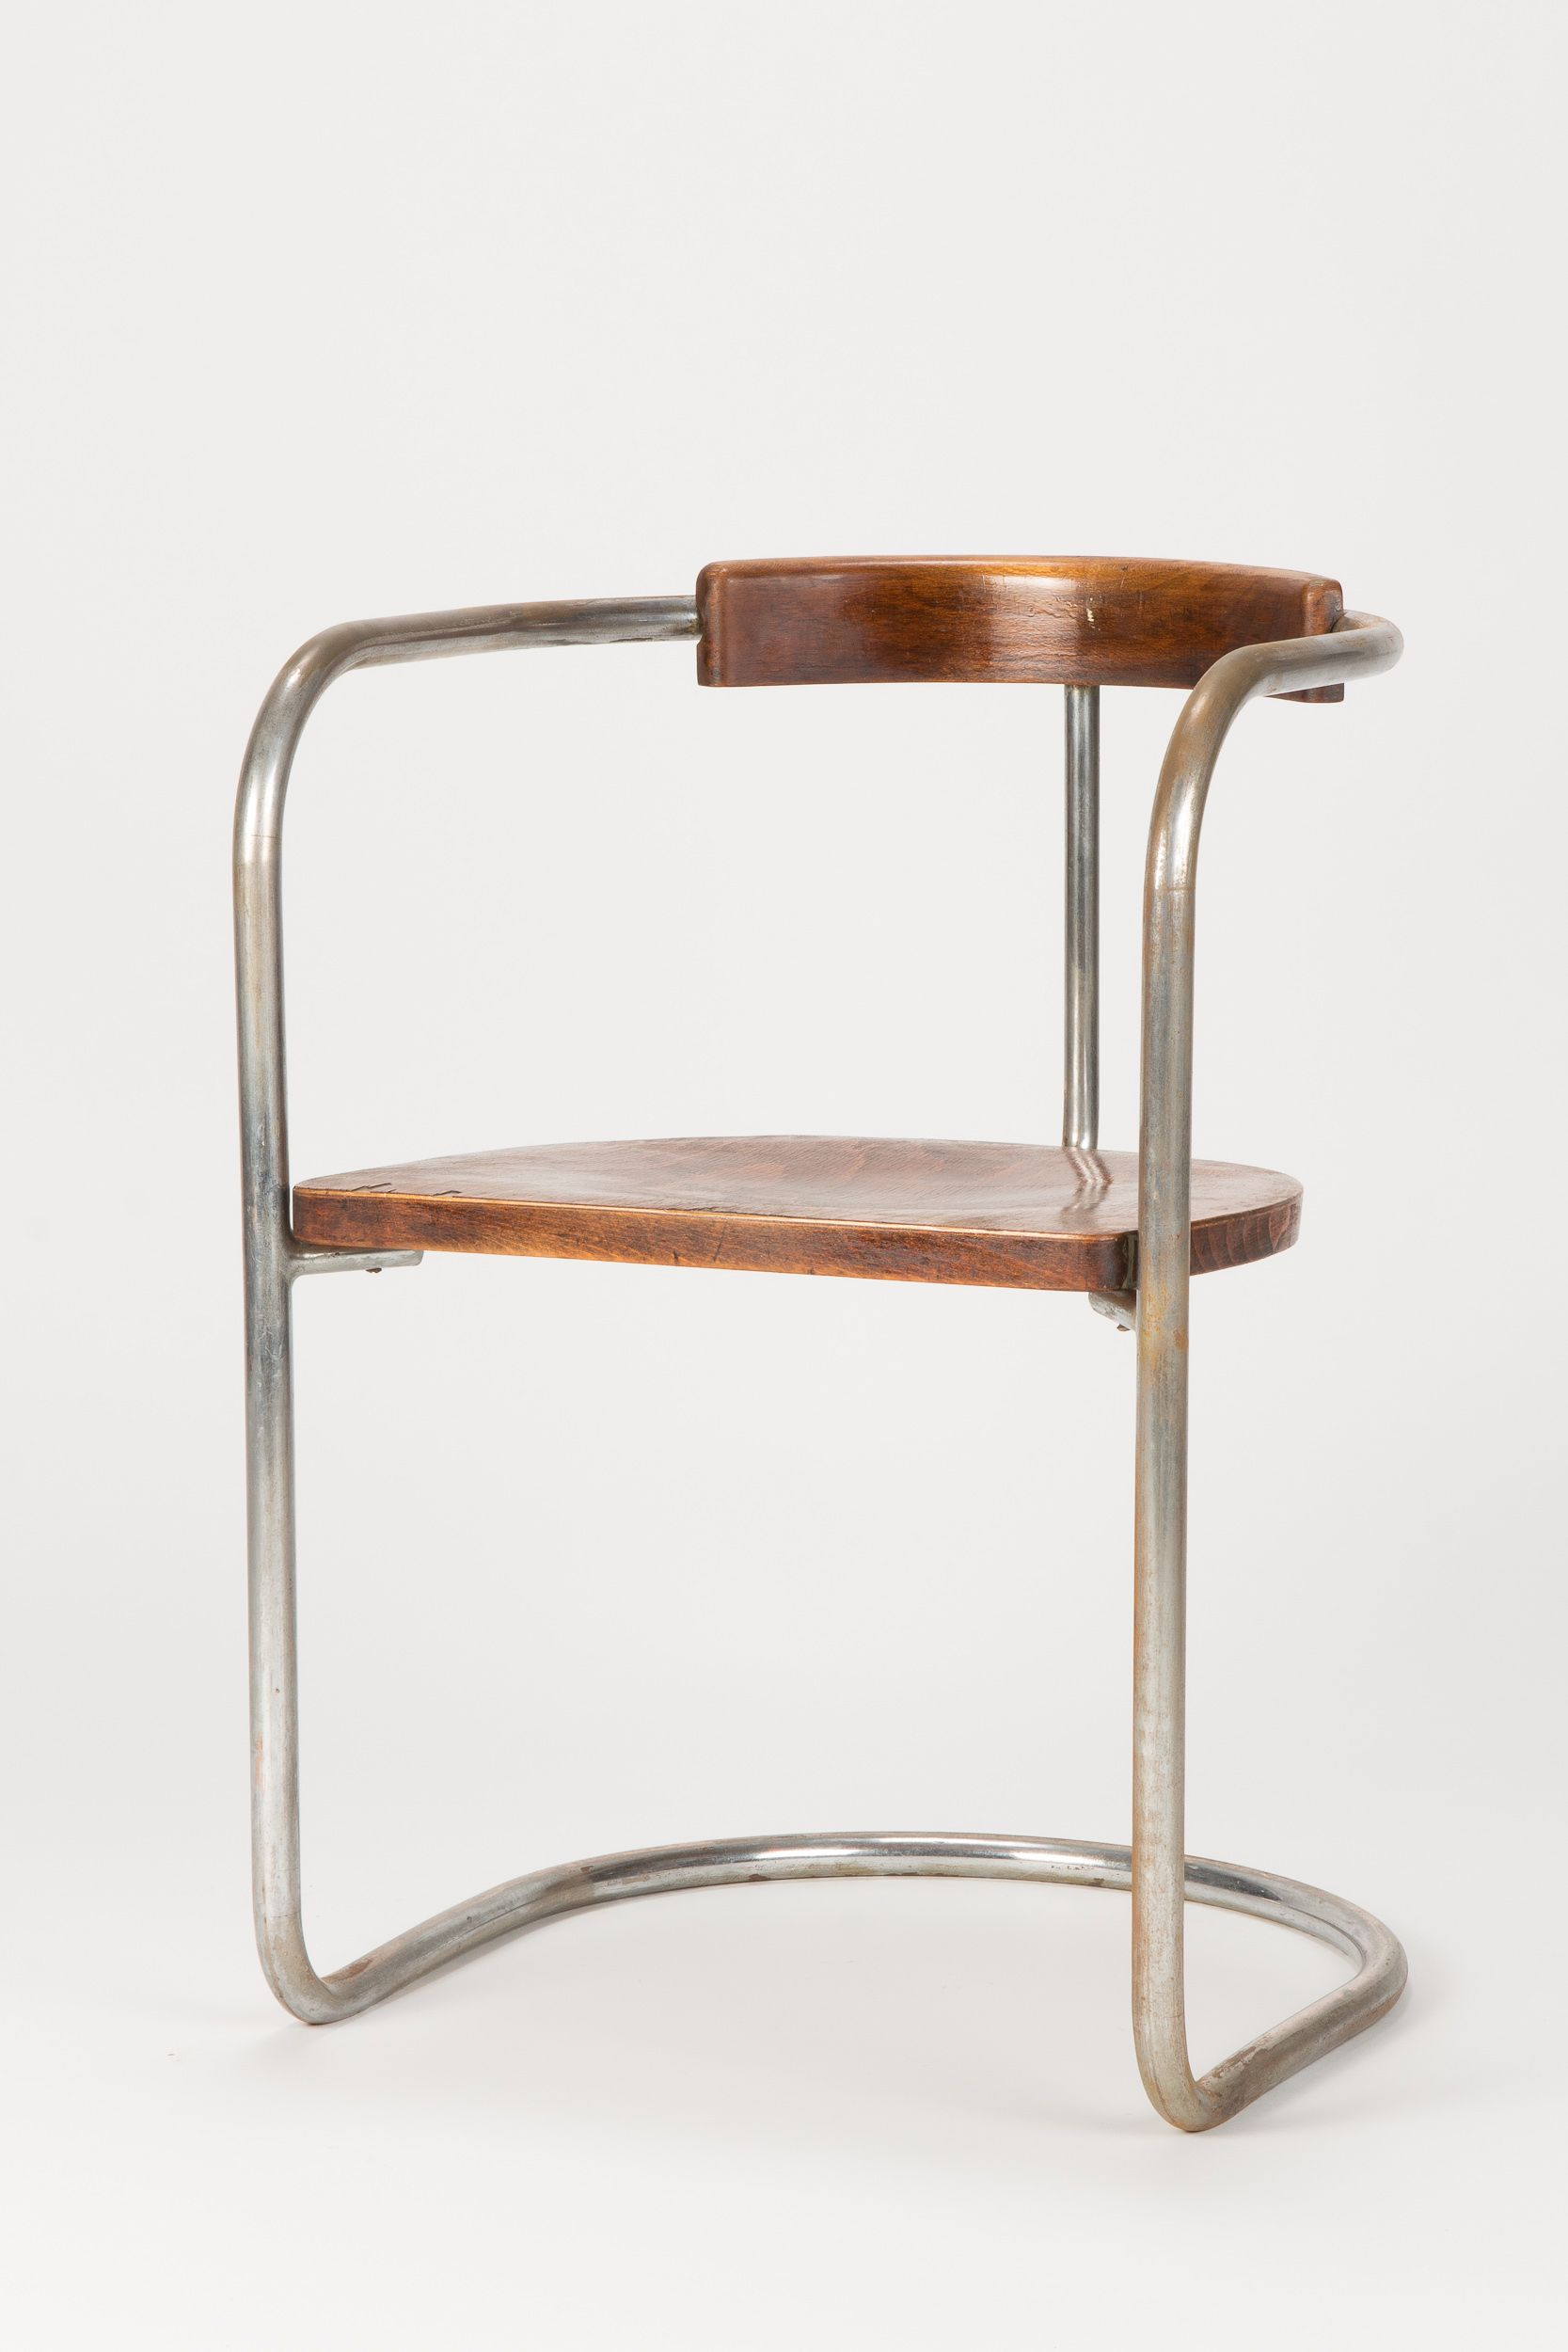 Unique Bauhaus cantilever chair made in Italy in the 1930s